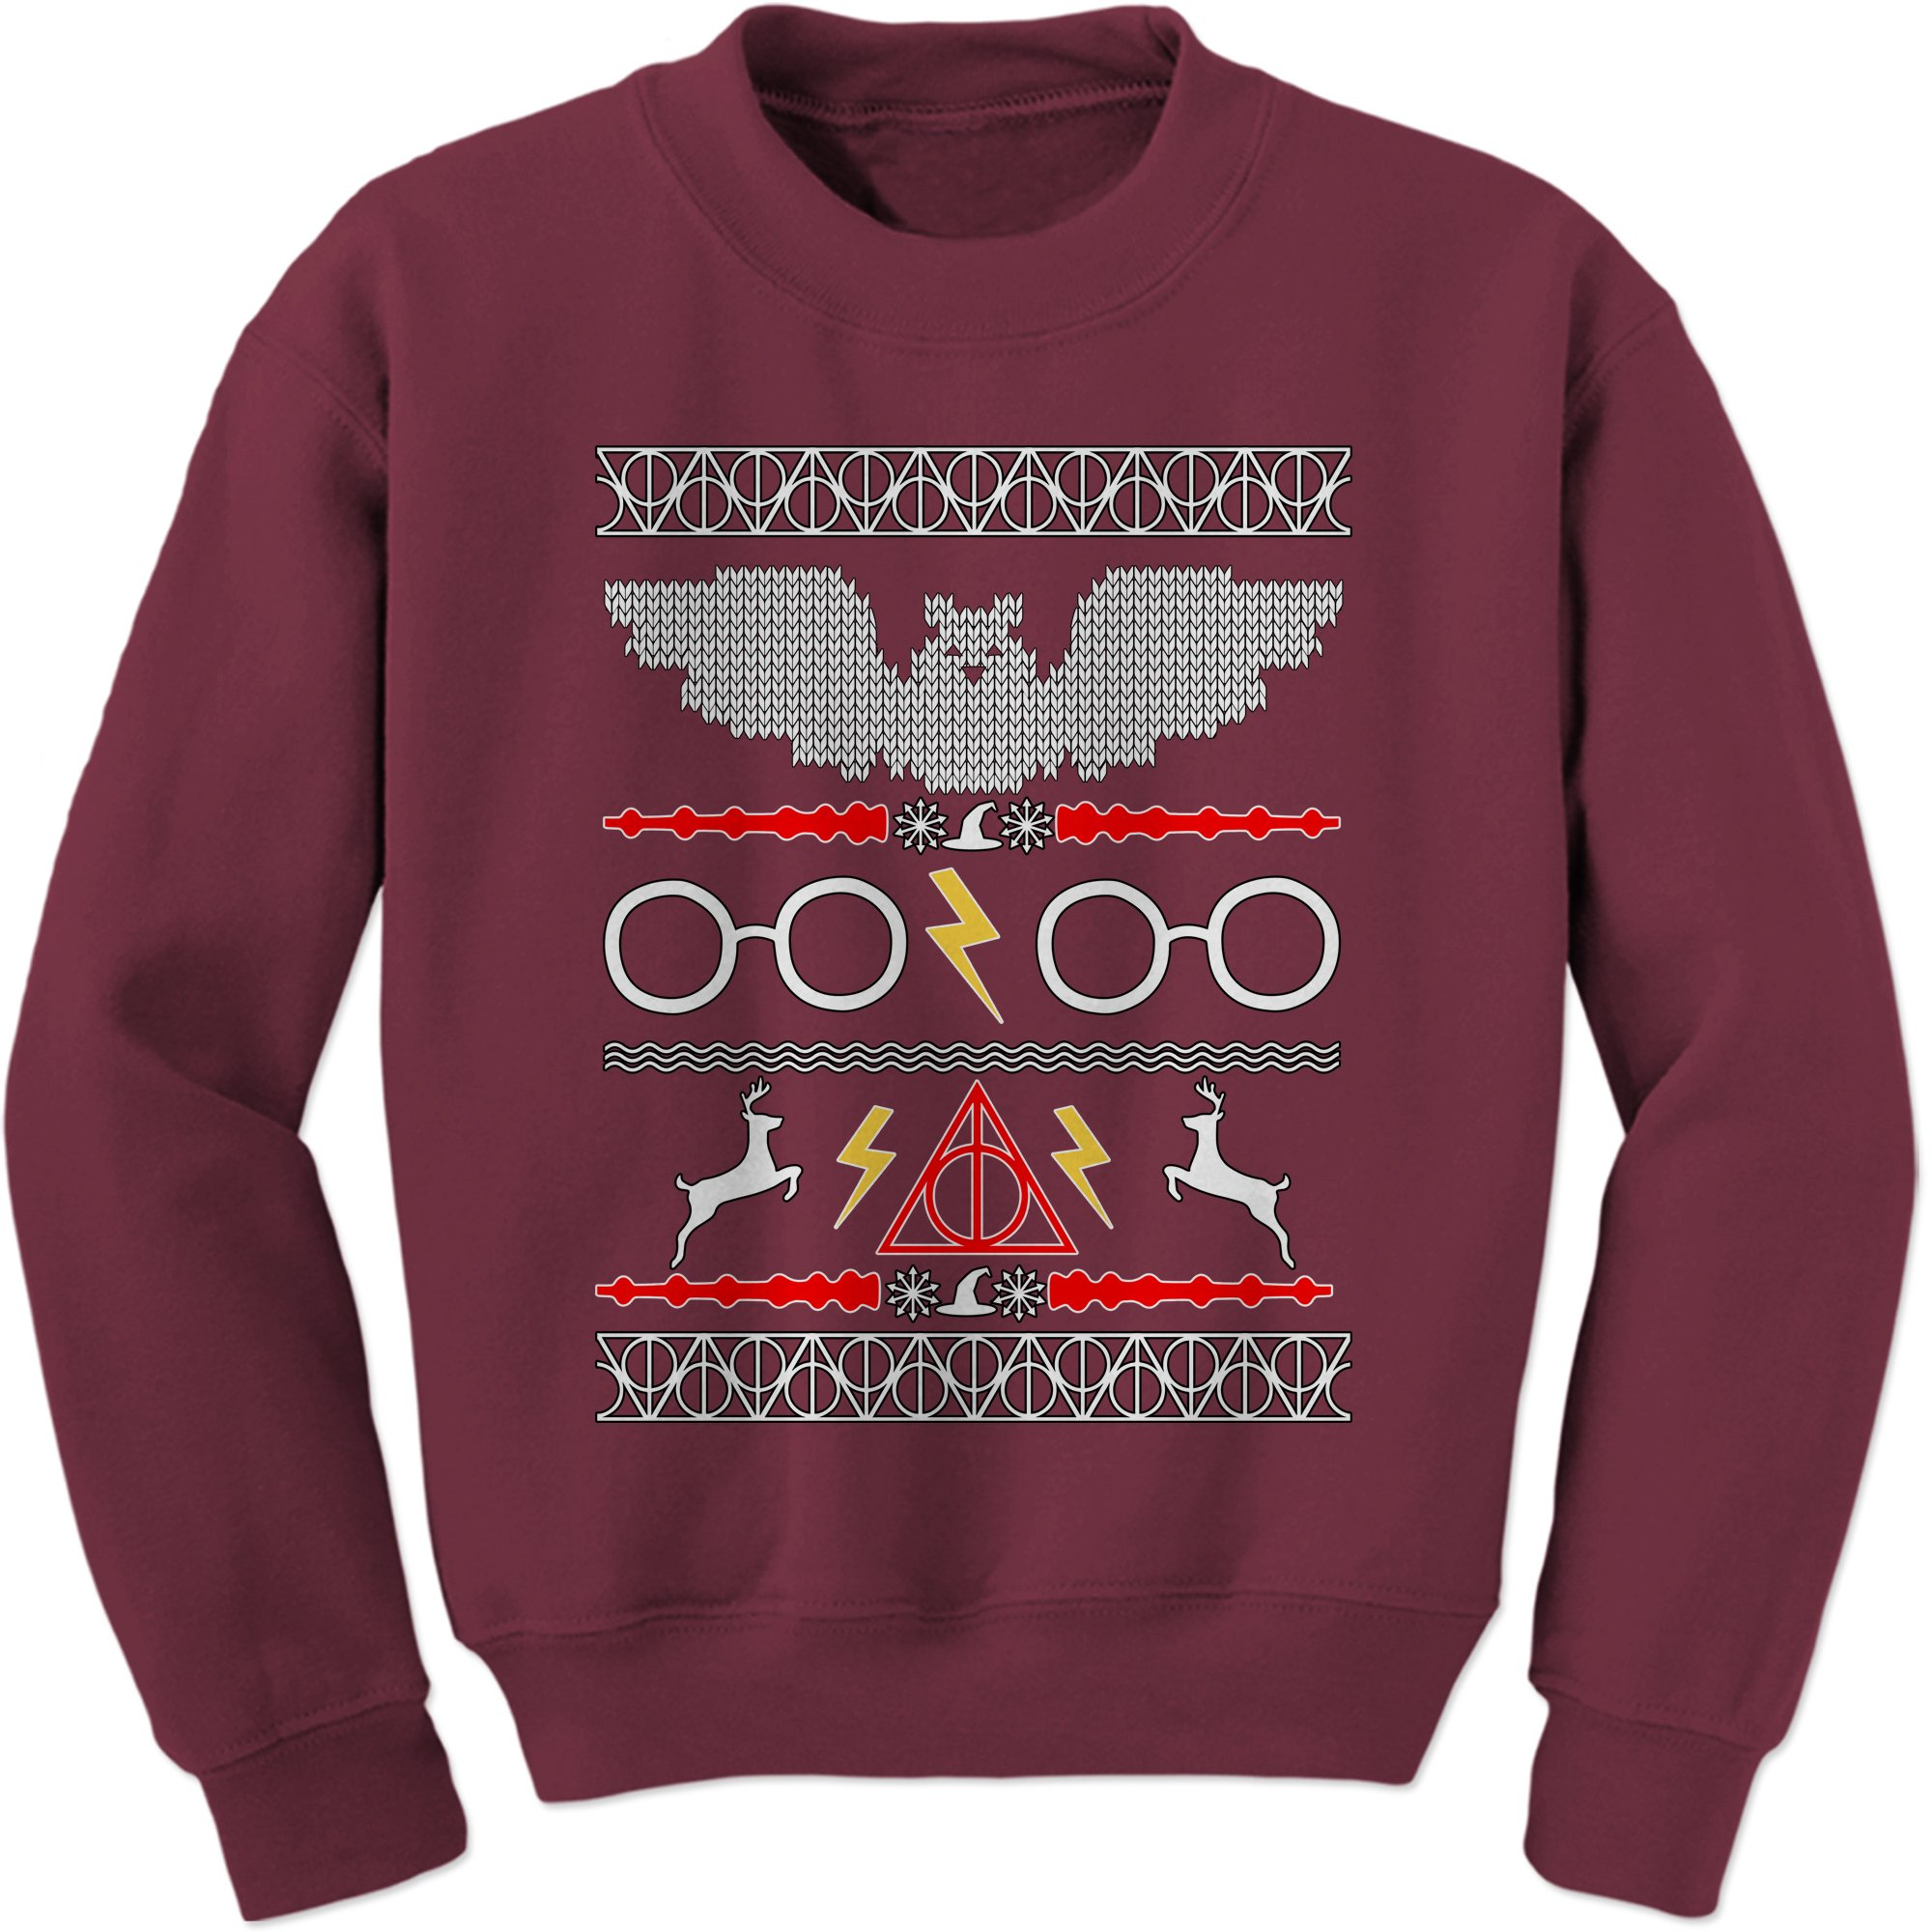 expression tees crew harry potter fawkes gryffindor ugly christmas sweater adult large maroon - Harry Potter Ugly Christmas Sweater